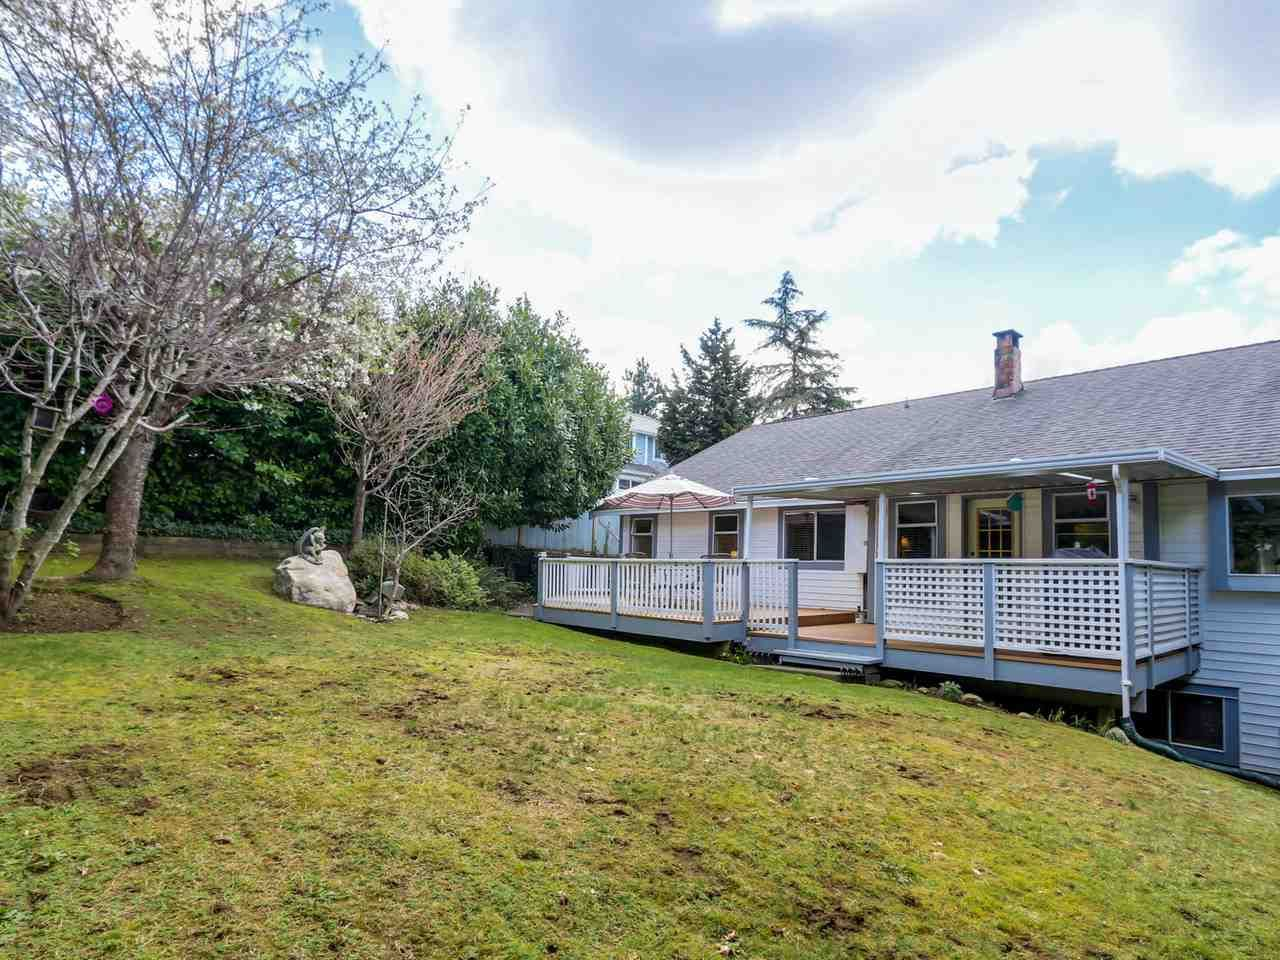 """Photo 19: Photos: 2559 BLUEBELL Avenue in Coquitlam: Summitt View House for sale in """"SUMMITT VIEW"""" : MLS®# R2064204"""